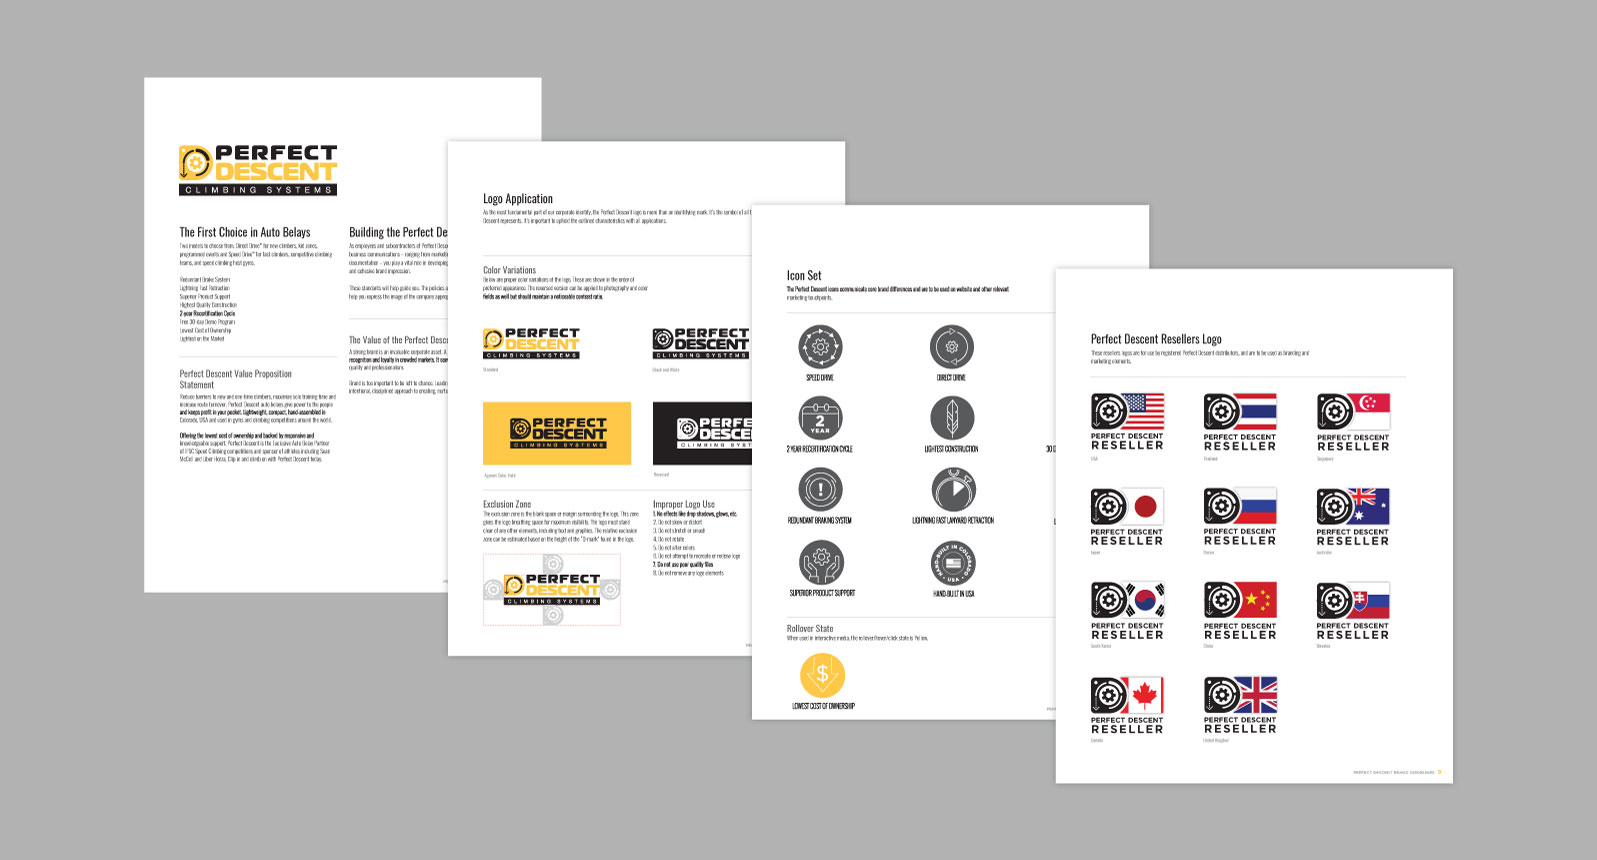 Pages from Perfect Descent branding guidelines document